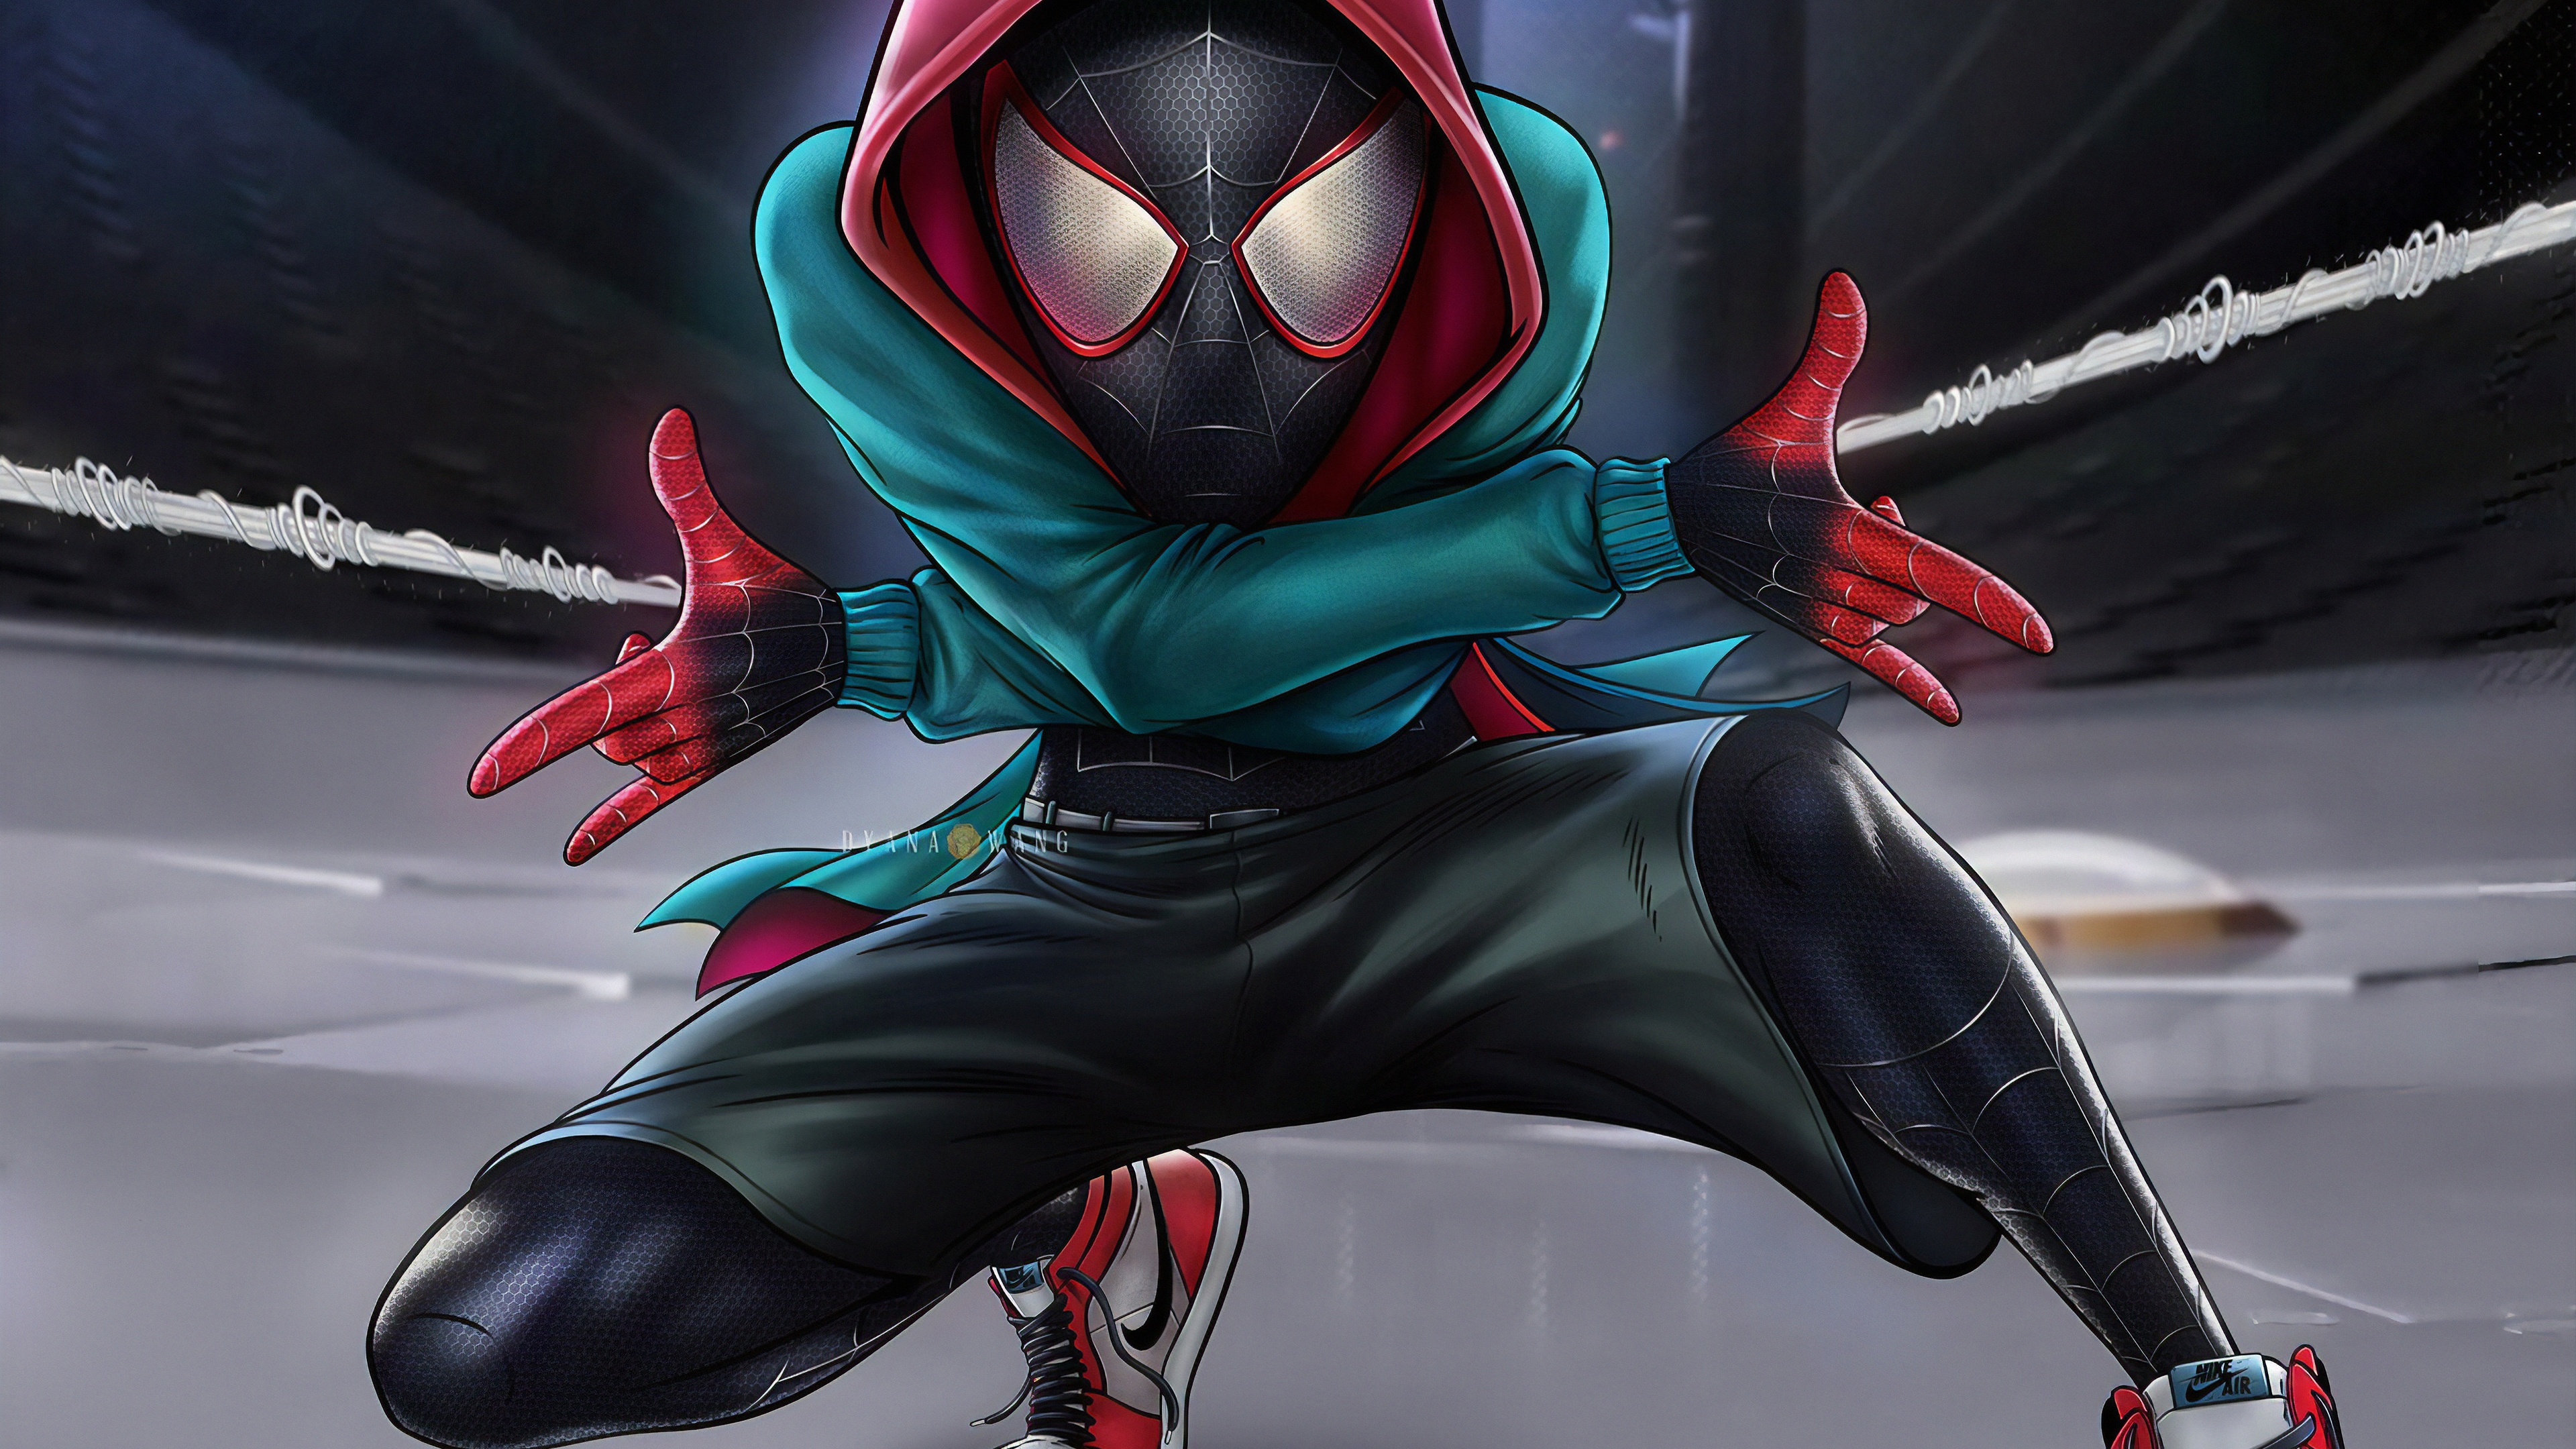 Wallpaper 4k Spiderman 4k Miles Morales 4k Wallpapers Artist